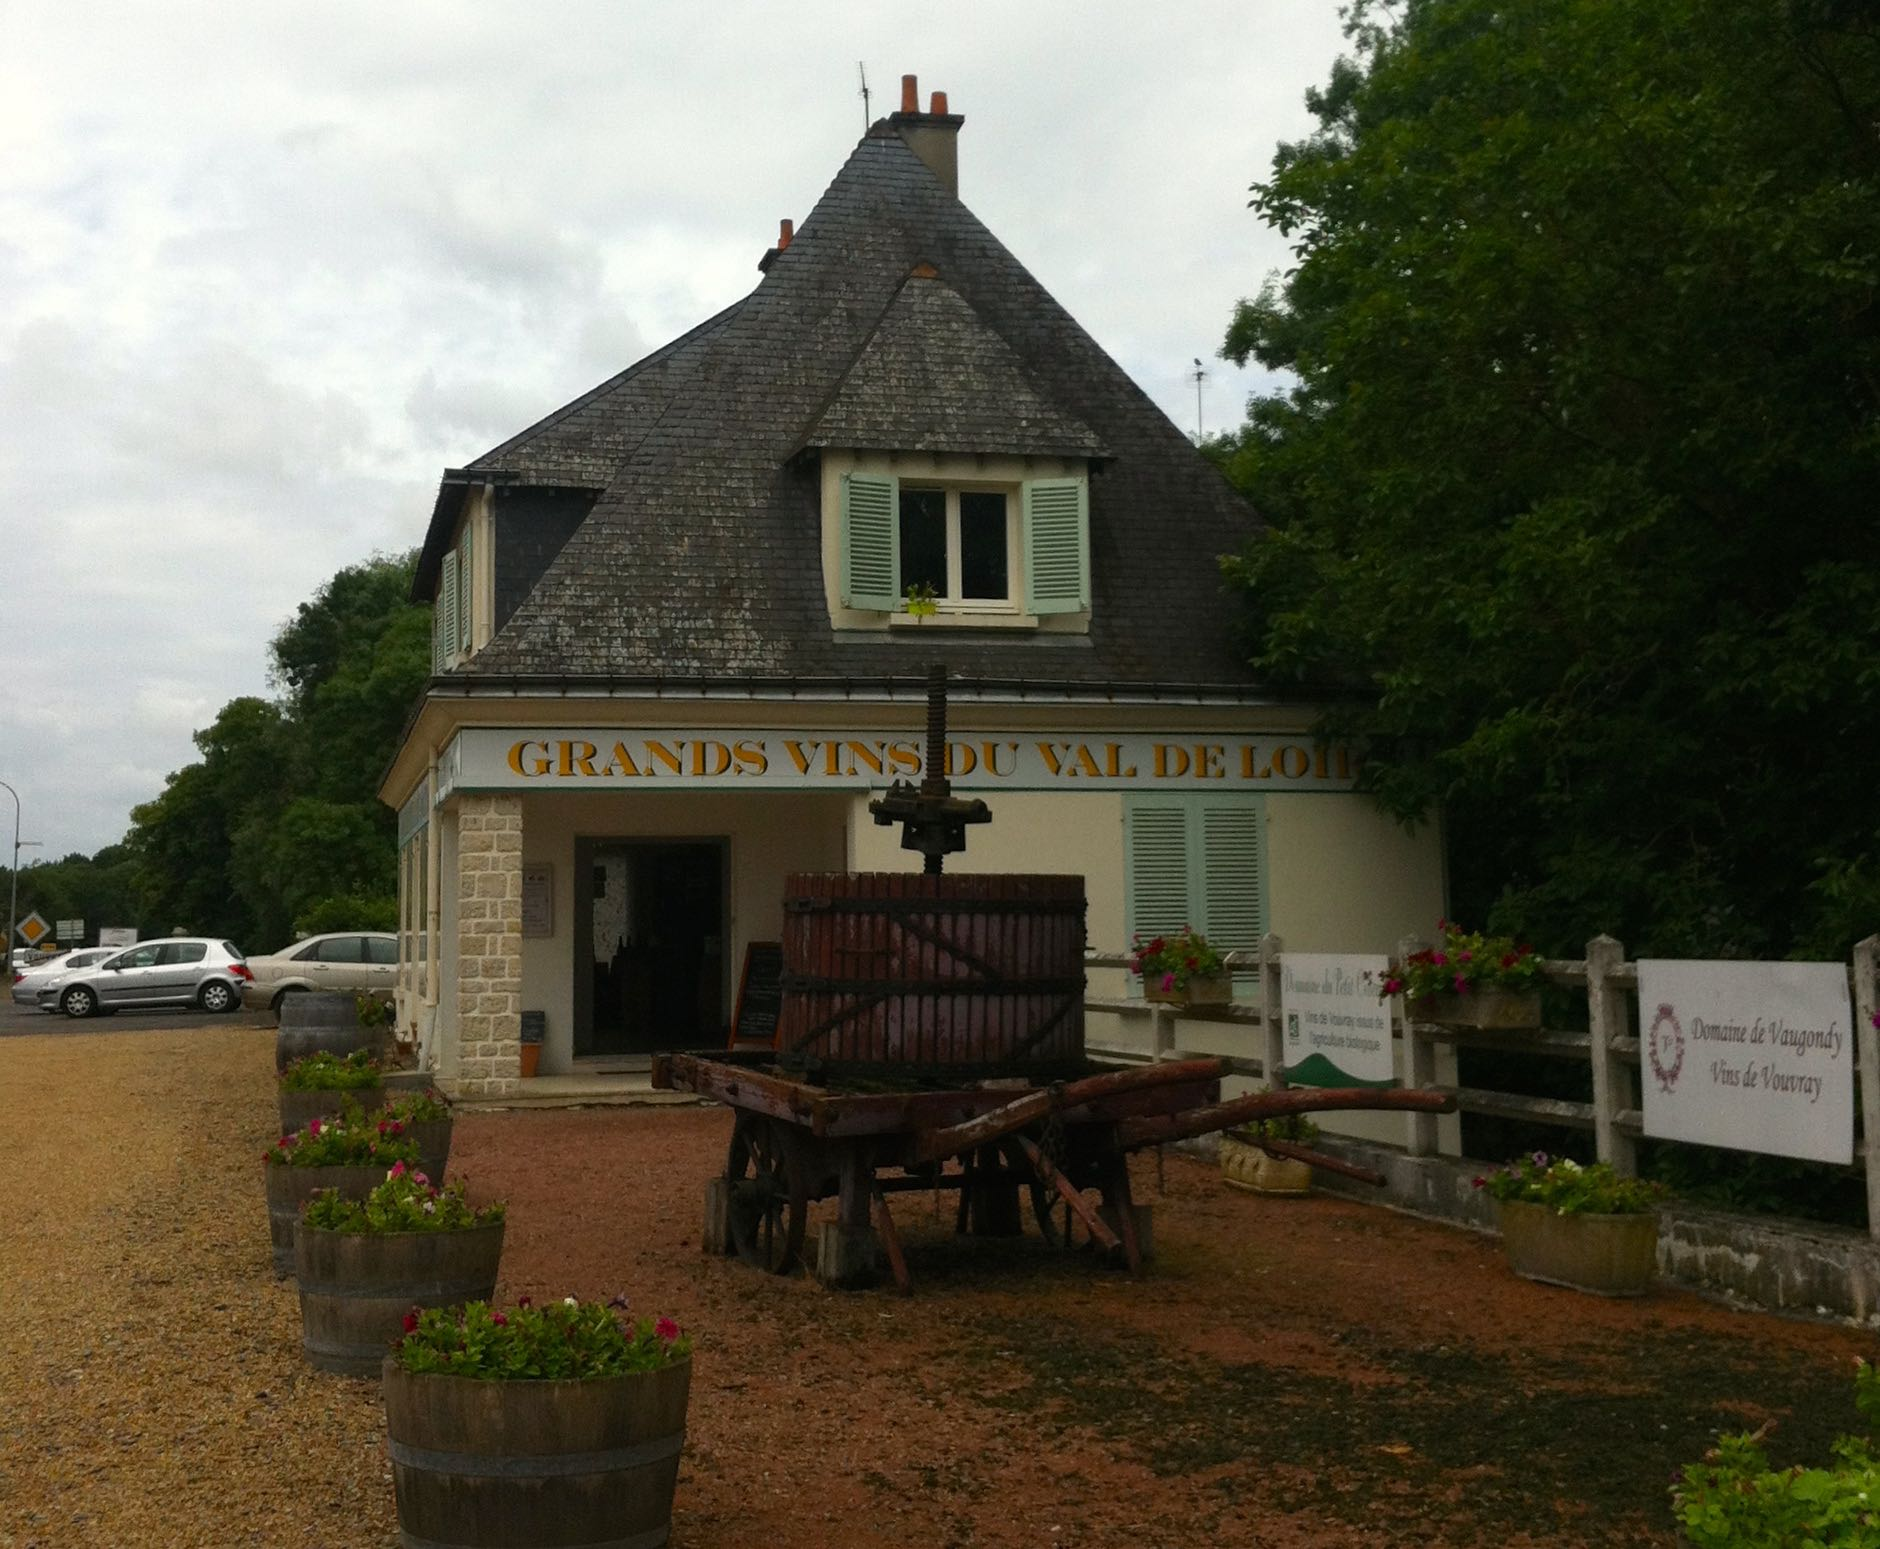 Our unscheduled stop in Vouvray where we decided to buy and try some of the wine of the same name